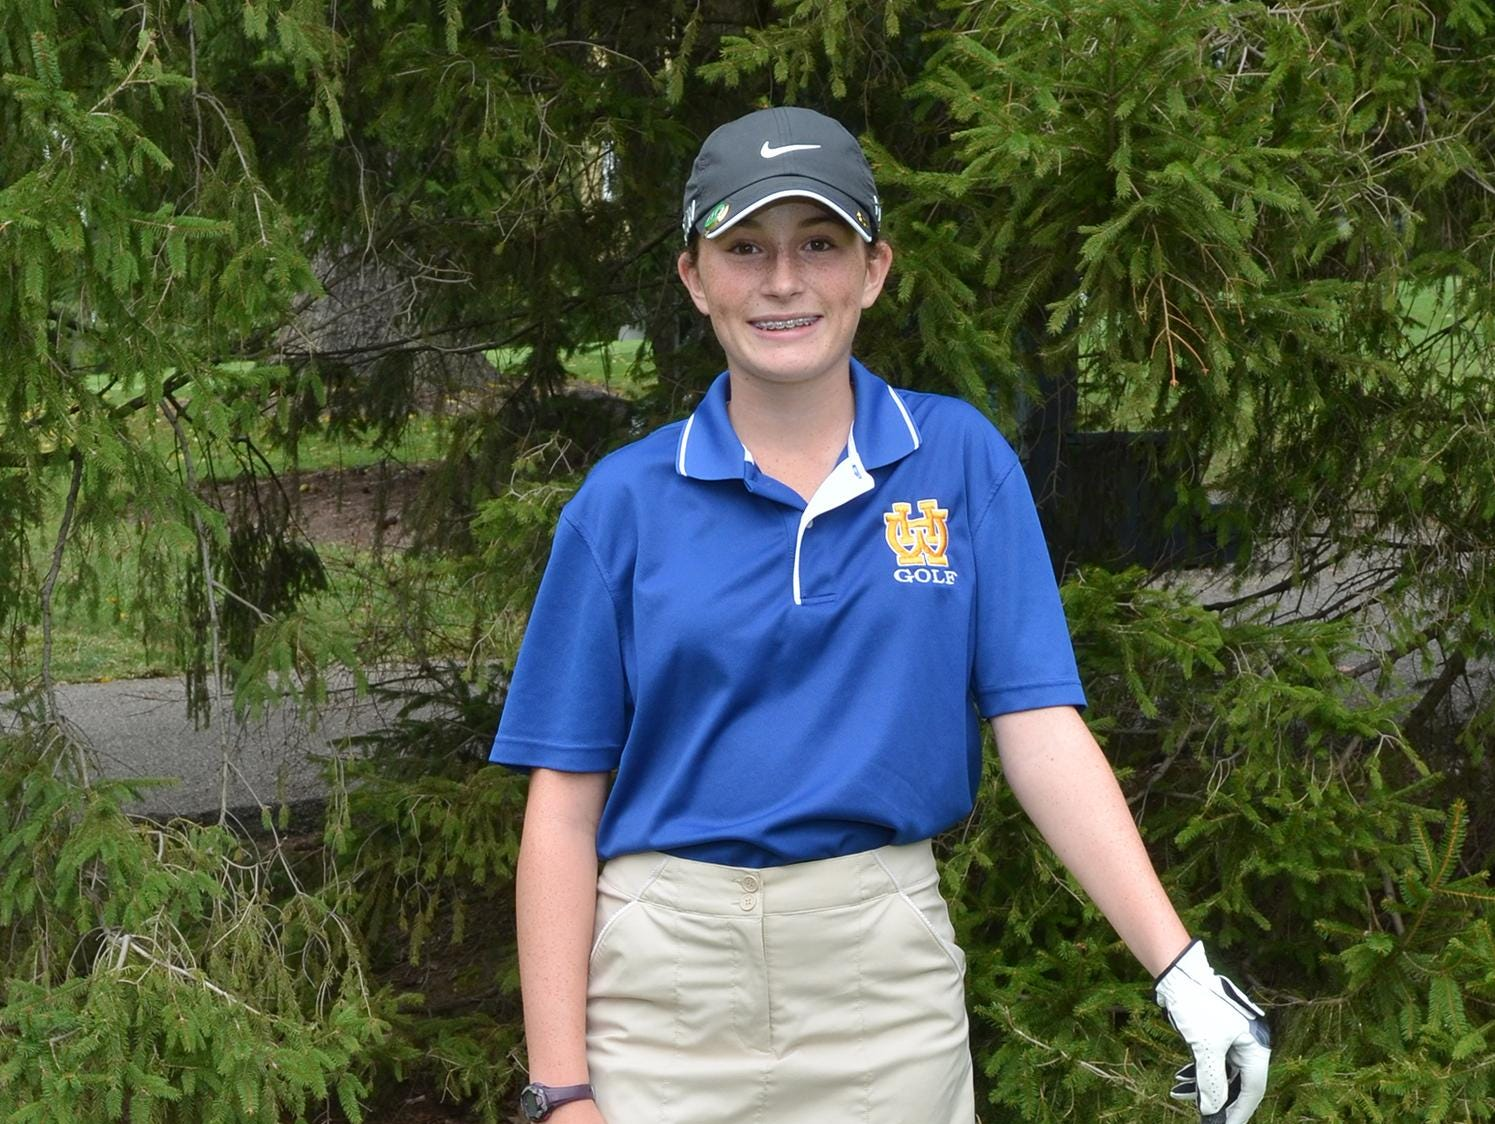 Because of numbers, Katie Hallinan had to compete on the Walnut Hills boys golf team last fall before playing individually in girls postseason matches. Hallinan had the lowest average of all of the Eagles. Hallinan is a resident of Loveland.